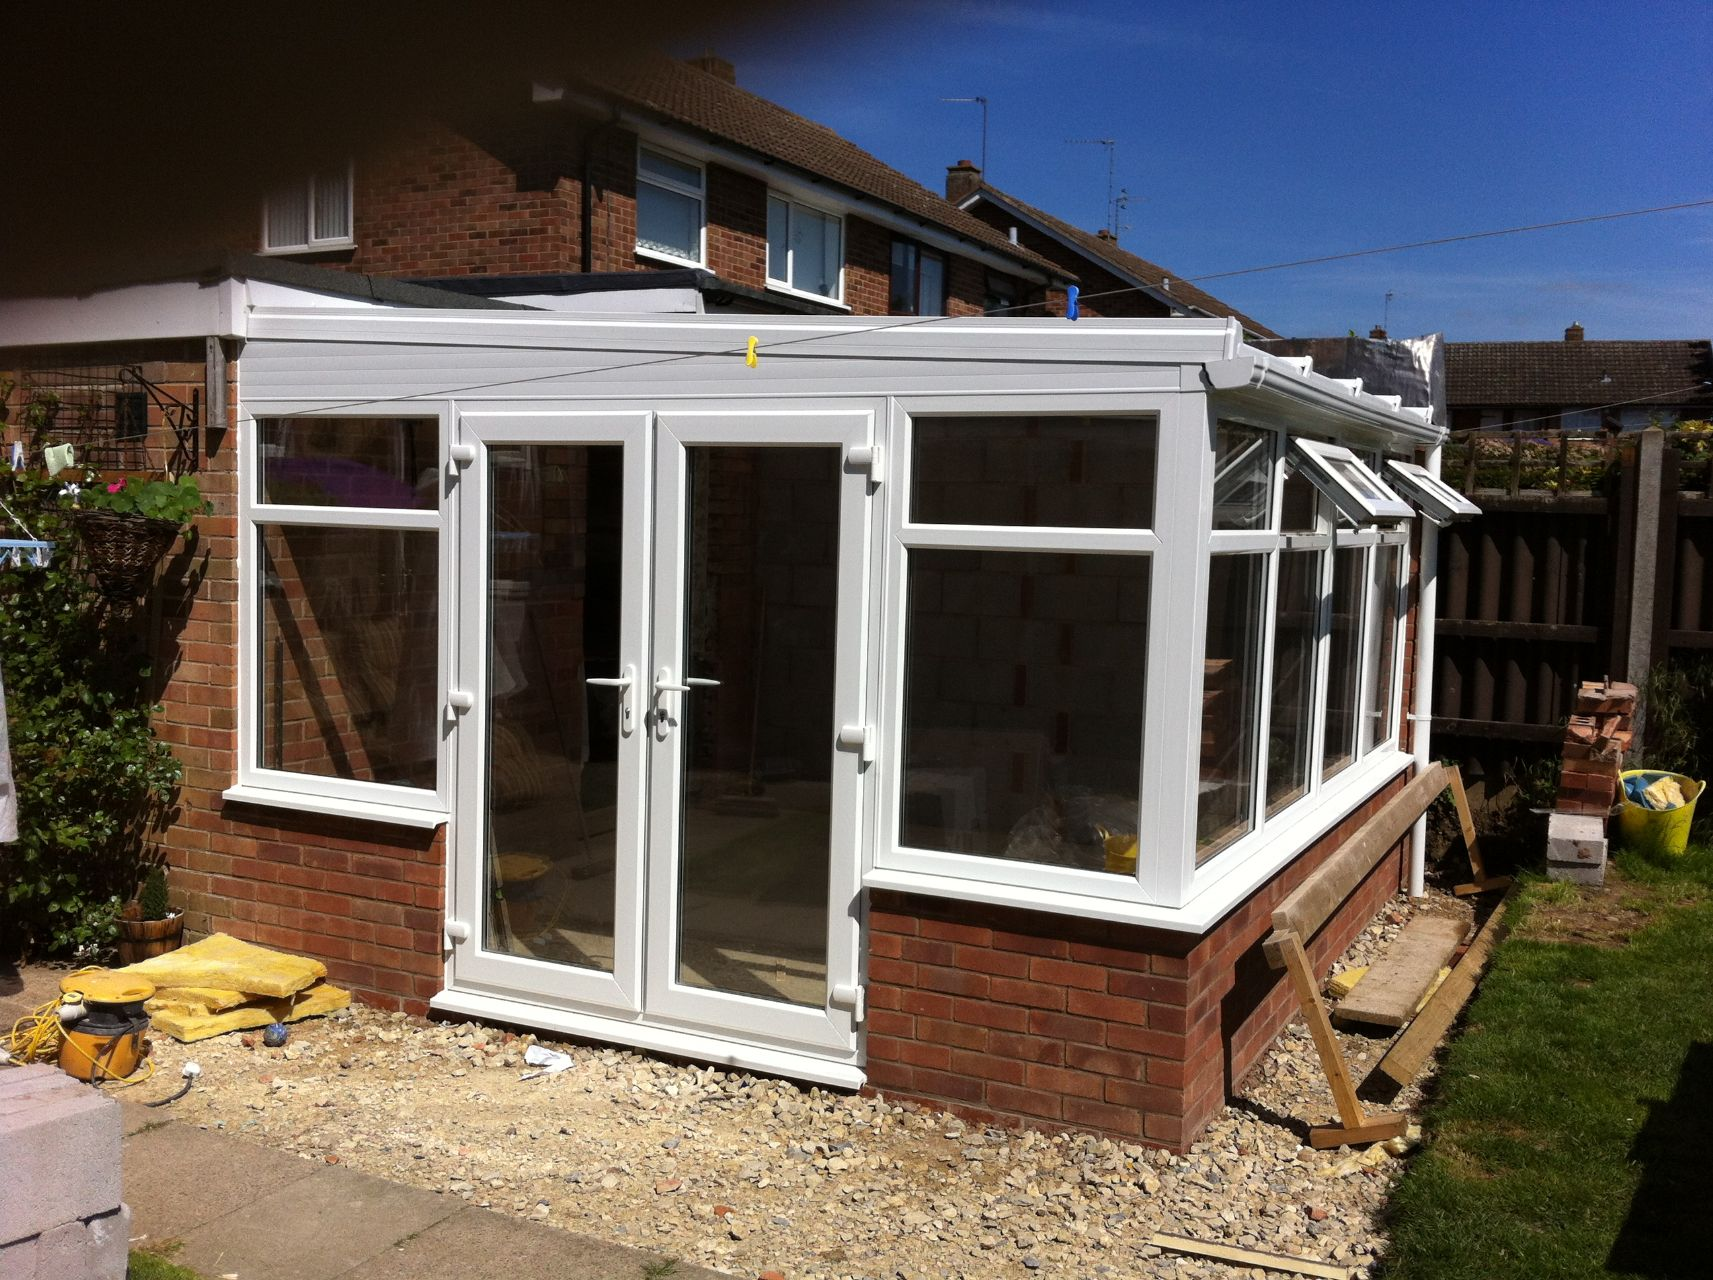 Conservatory in Stratford-upon-Avon